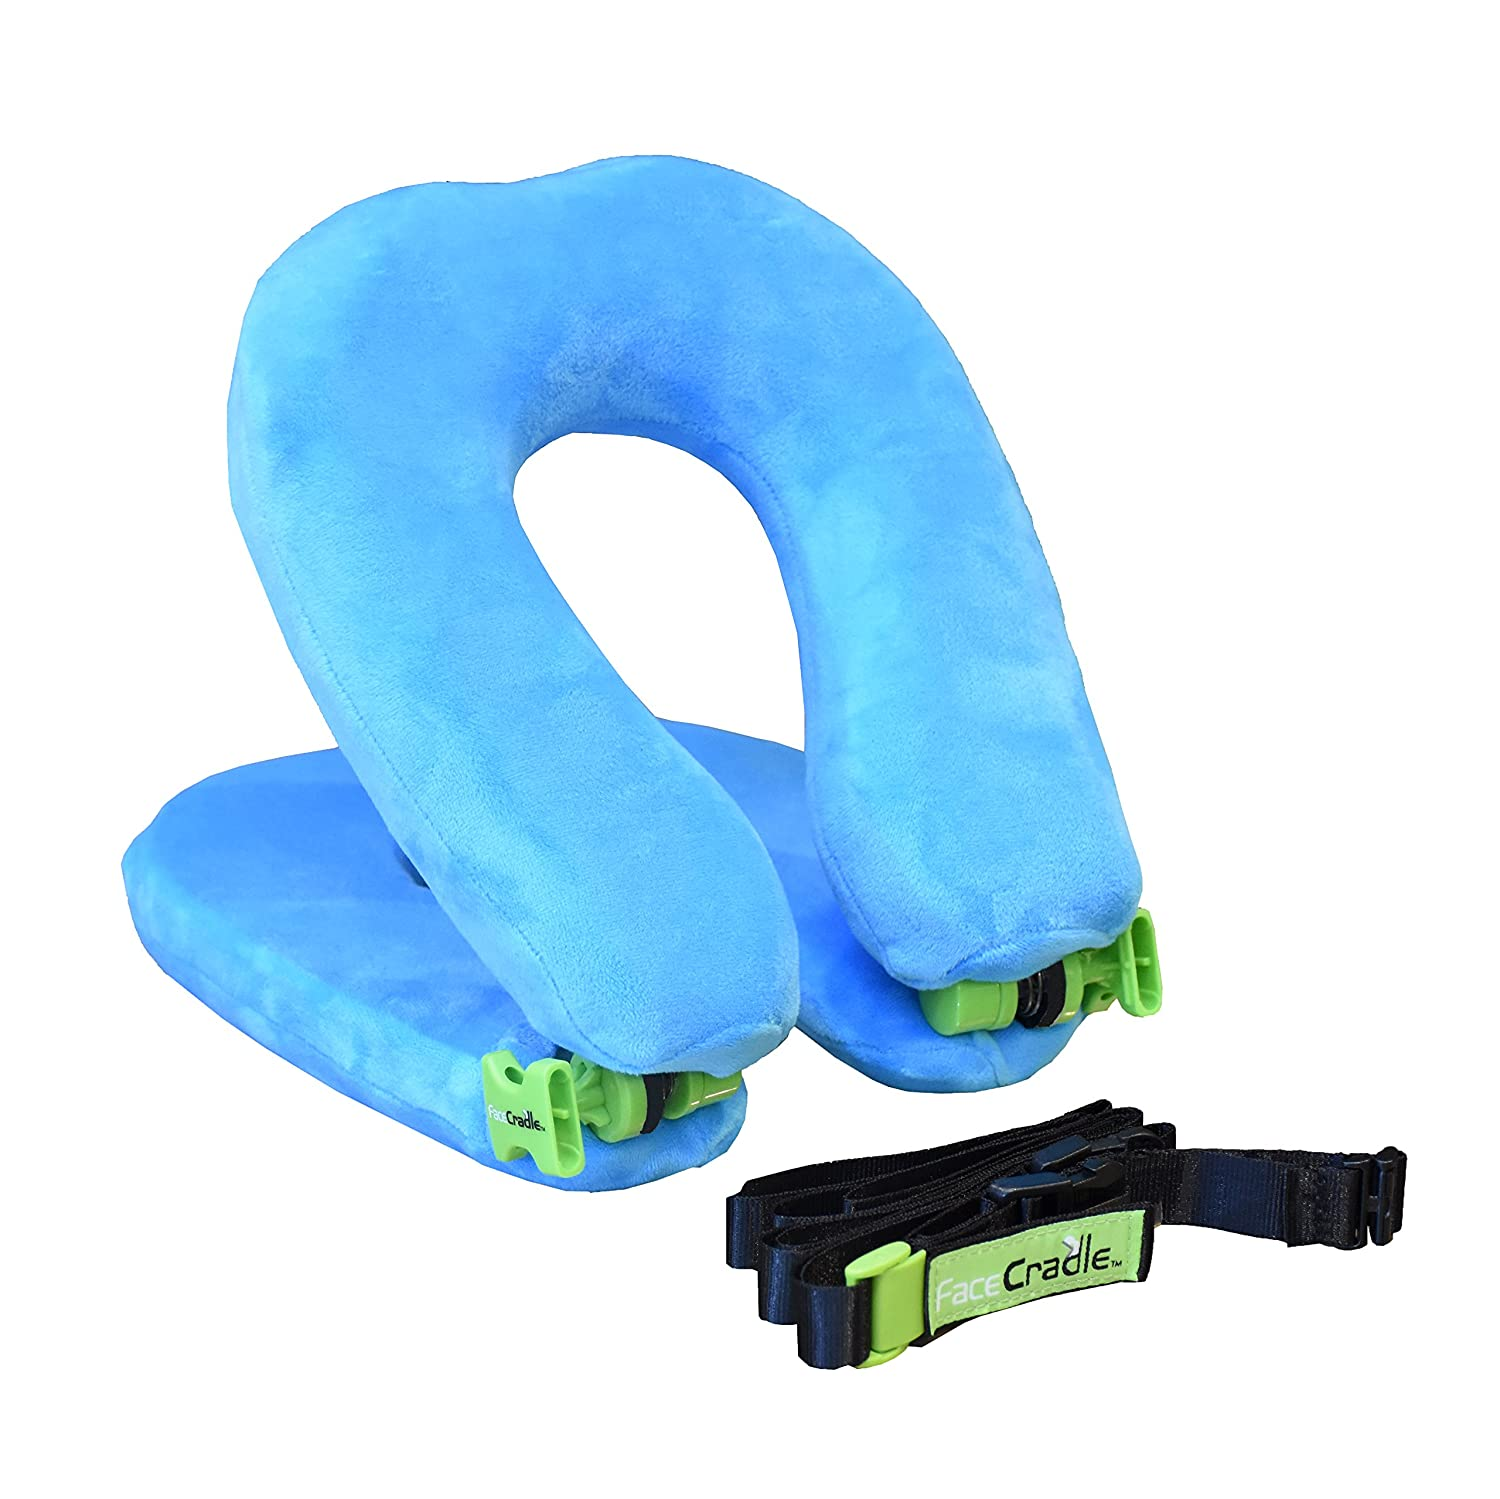 FaceCradle Latest Model, 5 Modes plus, Multi Function, Better Neck Support,Sleep Forward for travel on plane, car, bus, train or for nap on any table. Hairy Turtle Ptd. Ltd. FC8-B-S